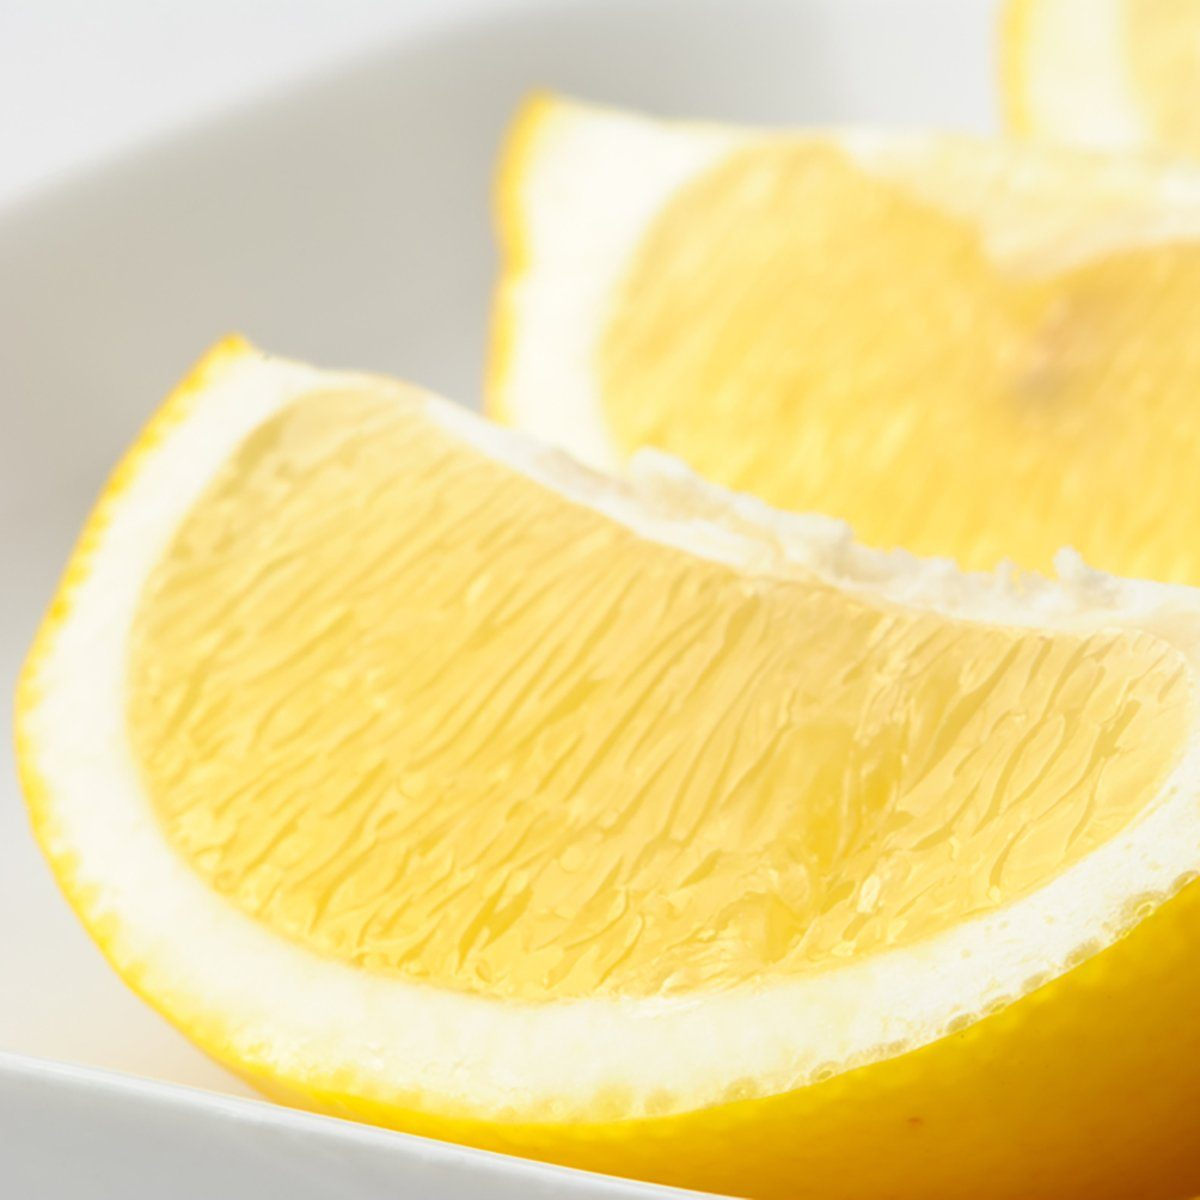 Lemon wedges in a white dish